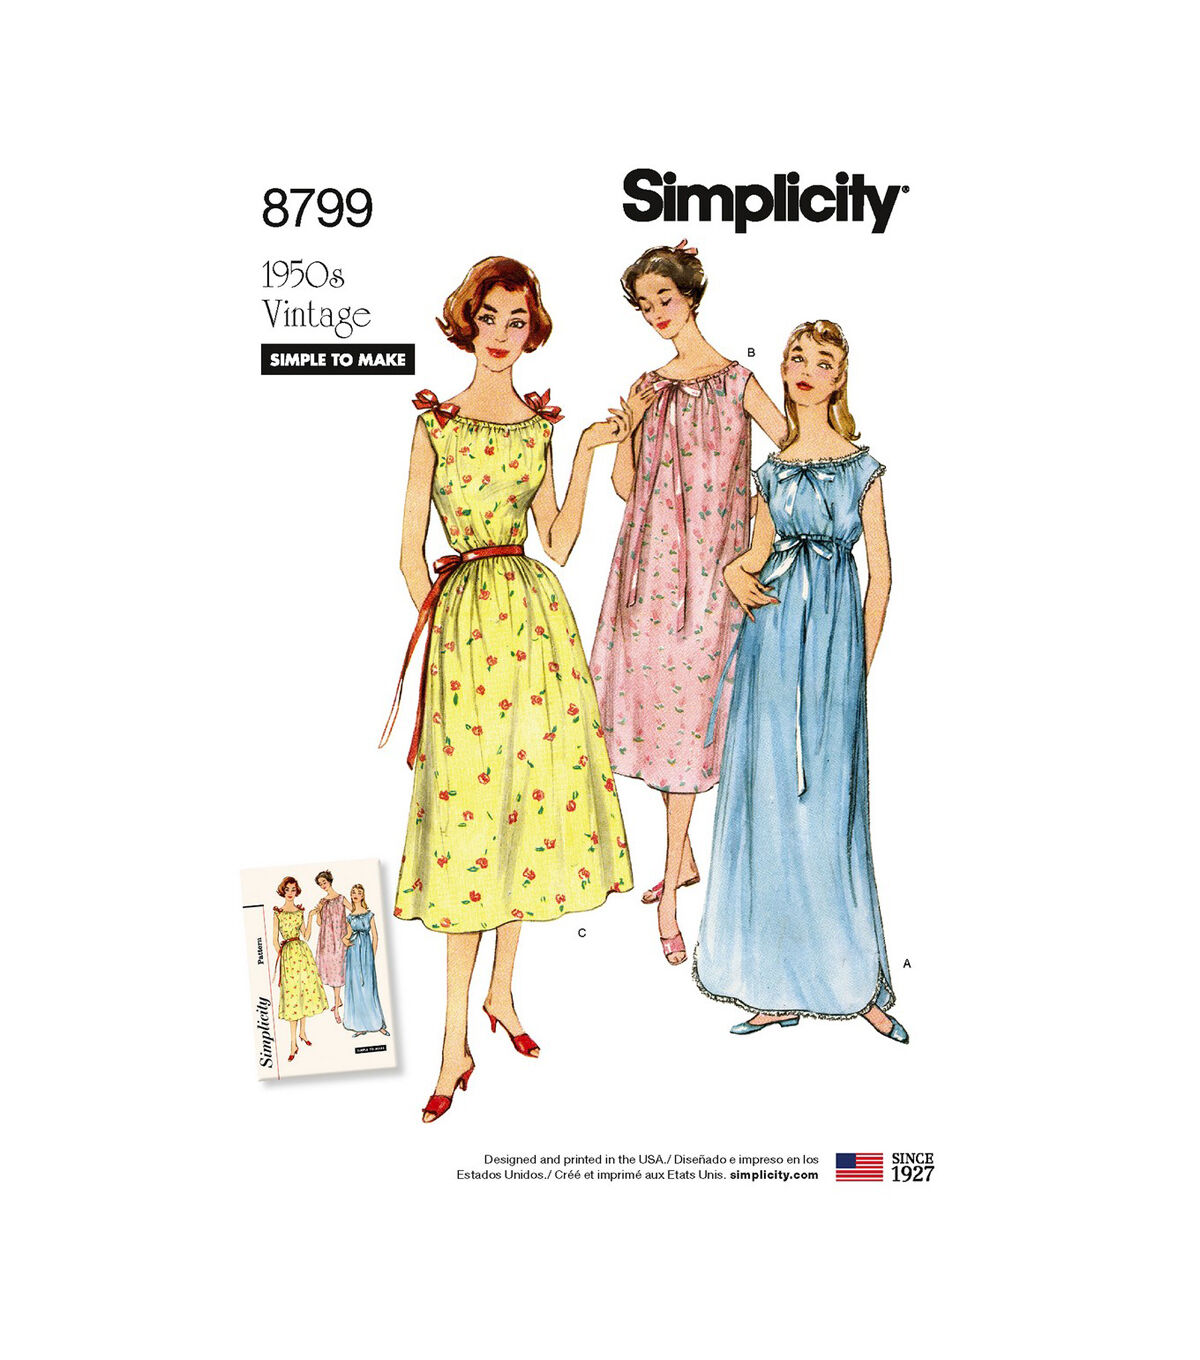 1950s Sewing Patterns | Dresses, Skirts, Tops, Mens Simplicity Pattern 8799 Misses Vintage Nightgowns - Size A XS - S - M - L - XL $22.95 AT vintagedancer.com